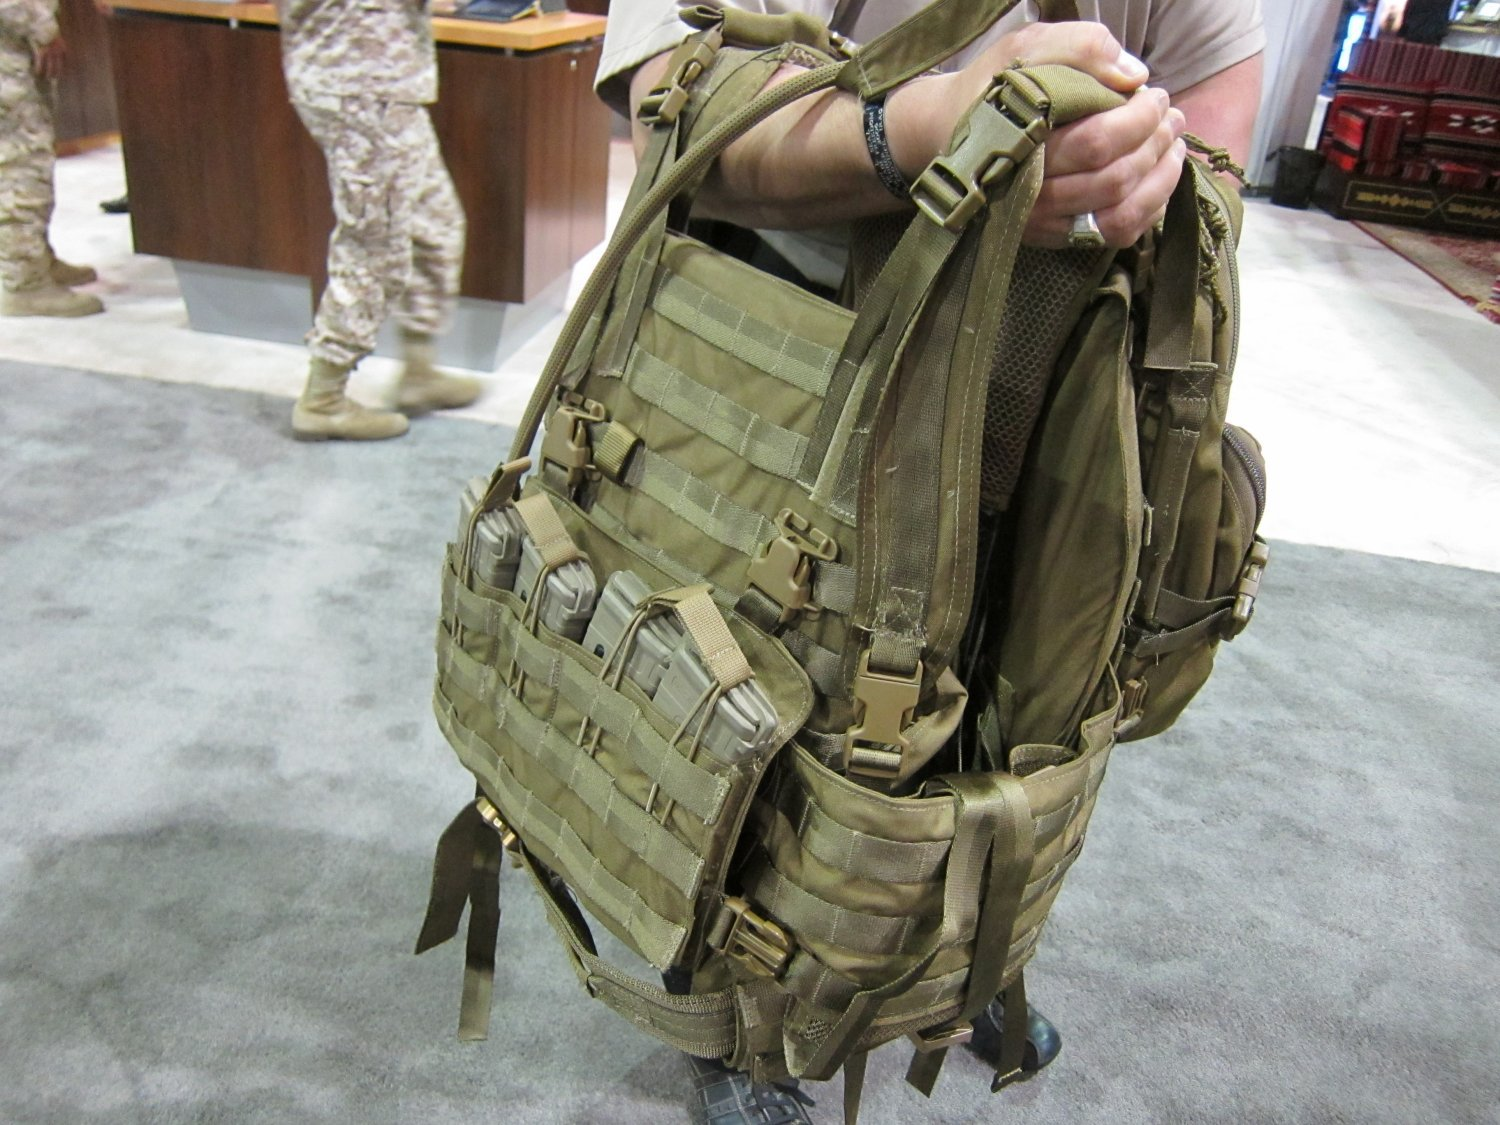 Archangel Armor Internal Frame Load Bearing System IFLBS Version 5 Tactical Armor Plate Carrier System SOFIC 2011 7 <!  :en  >Archangel Armor Internal Frame Load Bearing System (IFLBS) Version 5 Tactical Armor Plate Carrier/Tactical Vest System: Lighten your load when youre in combat mode!<!  :  >